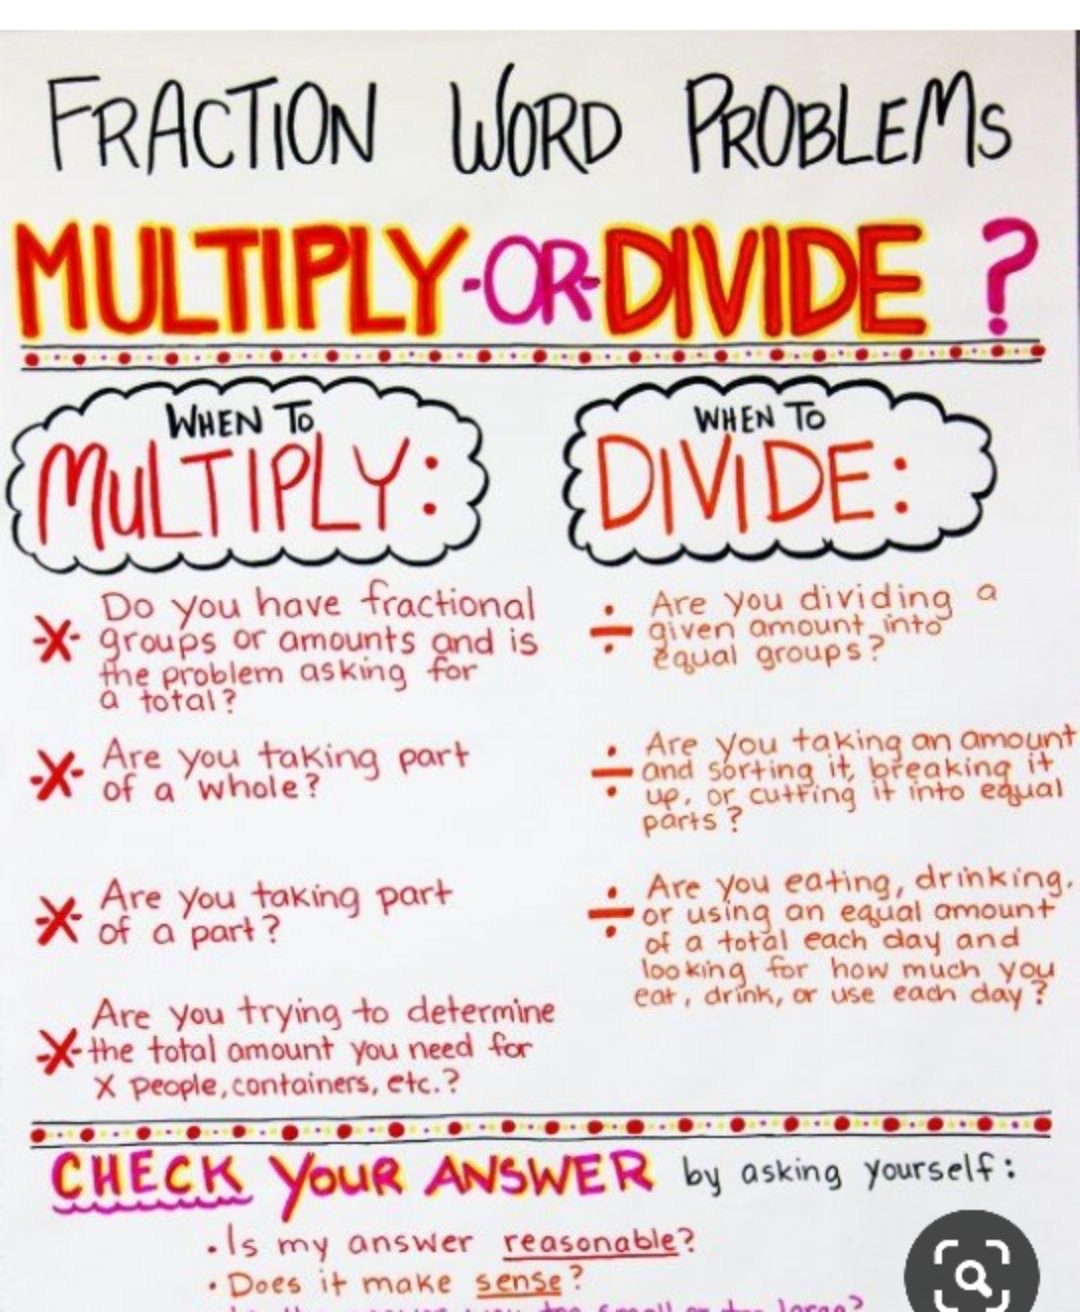 Do you need to multiply or divide?